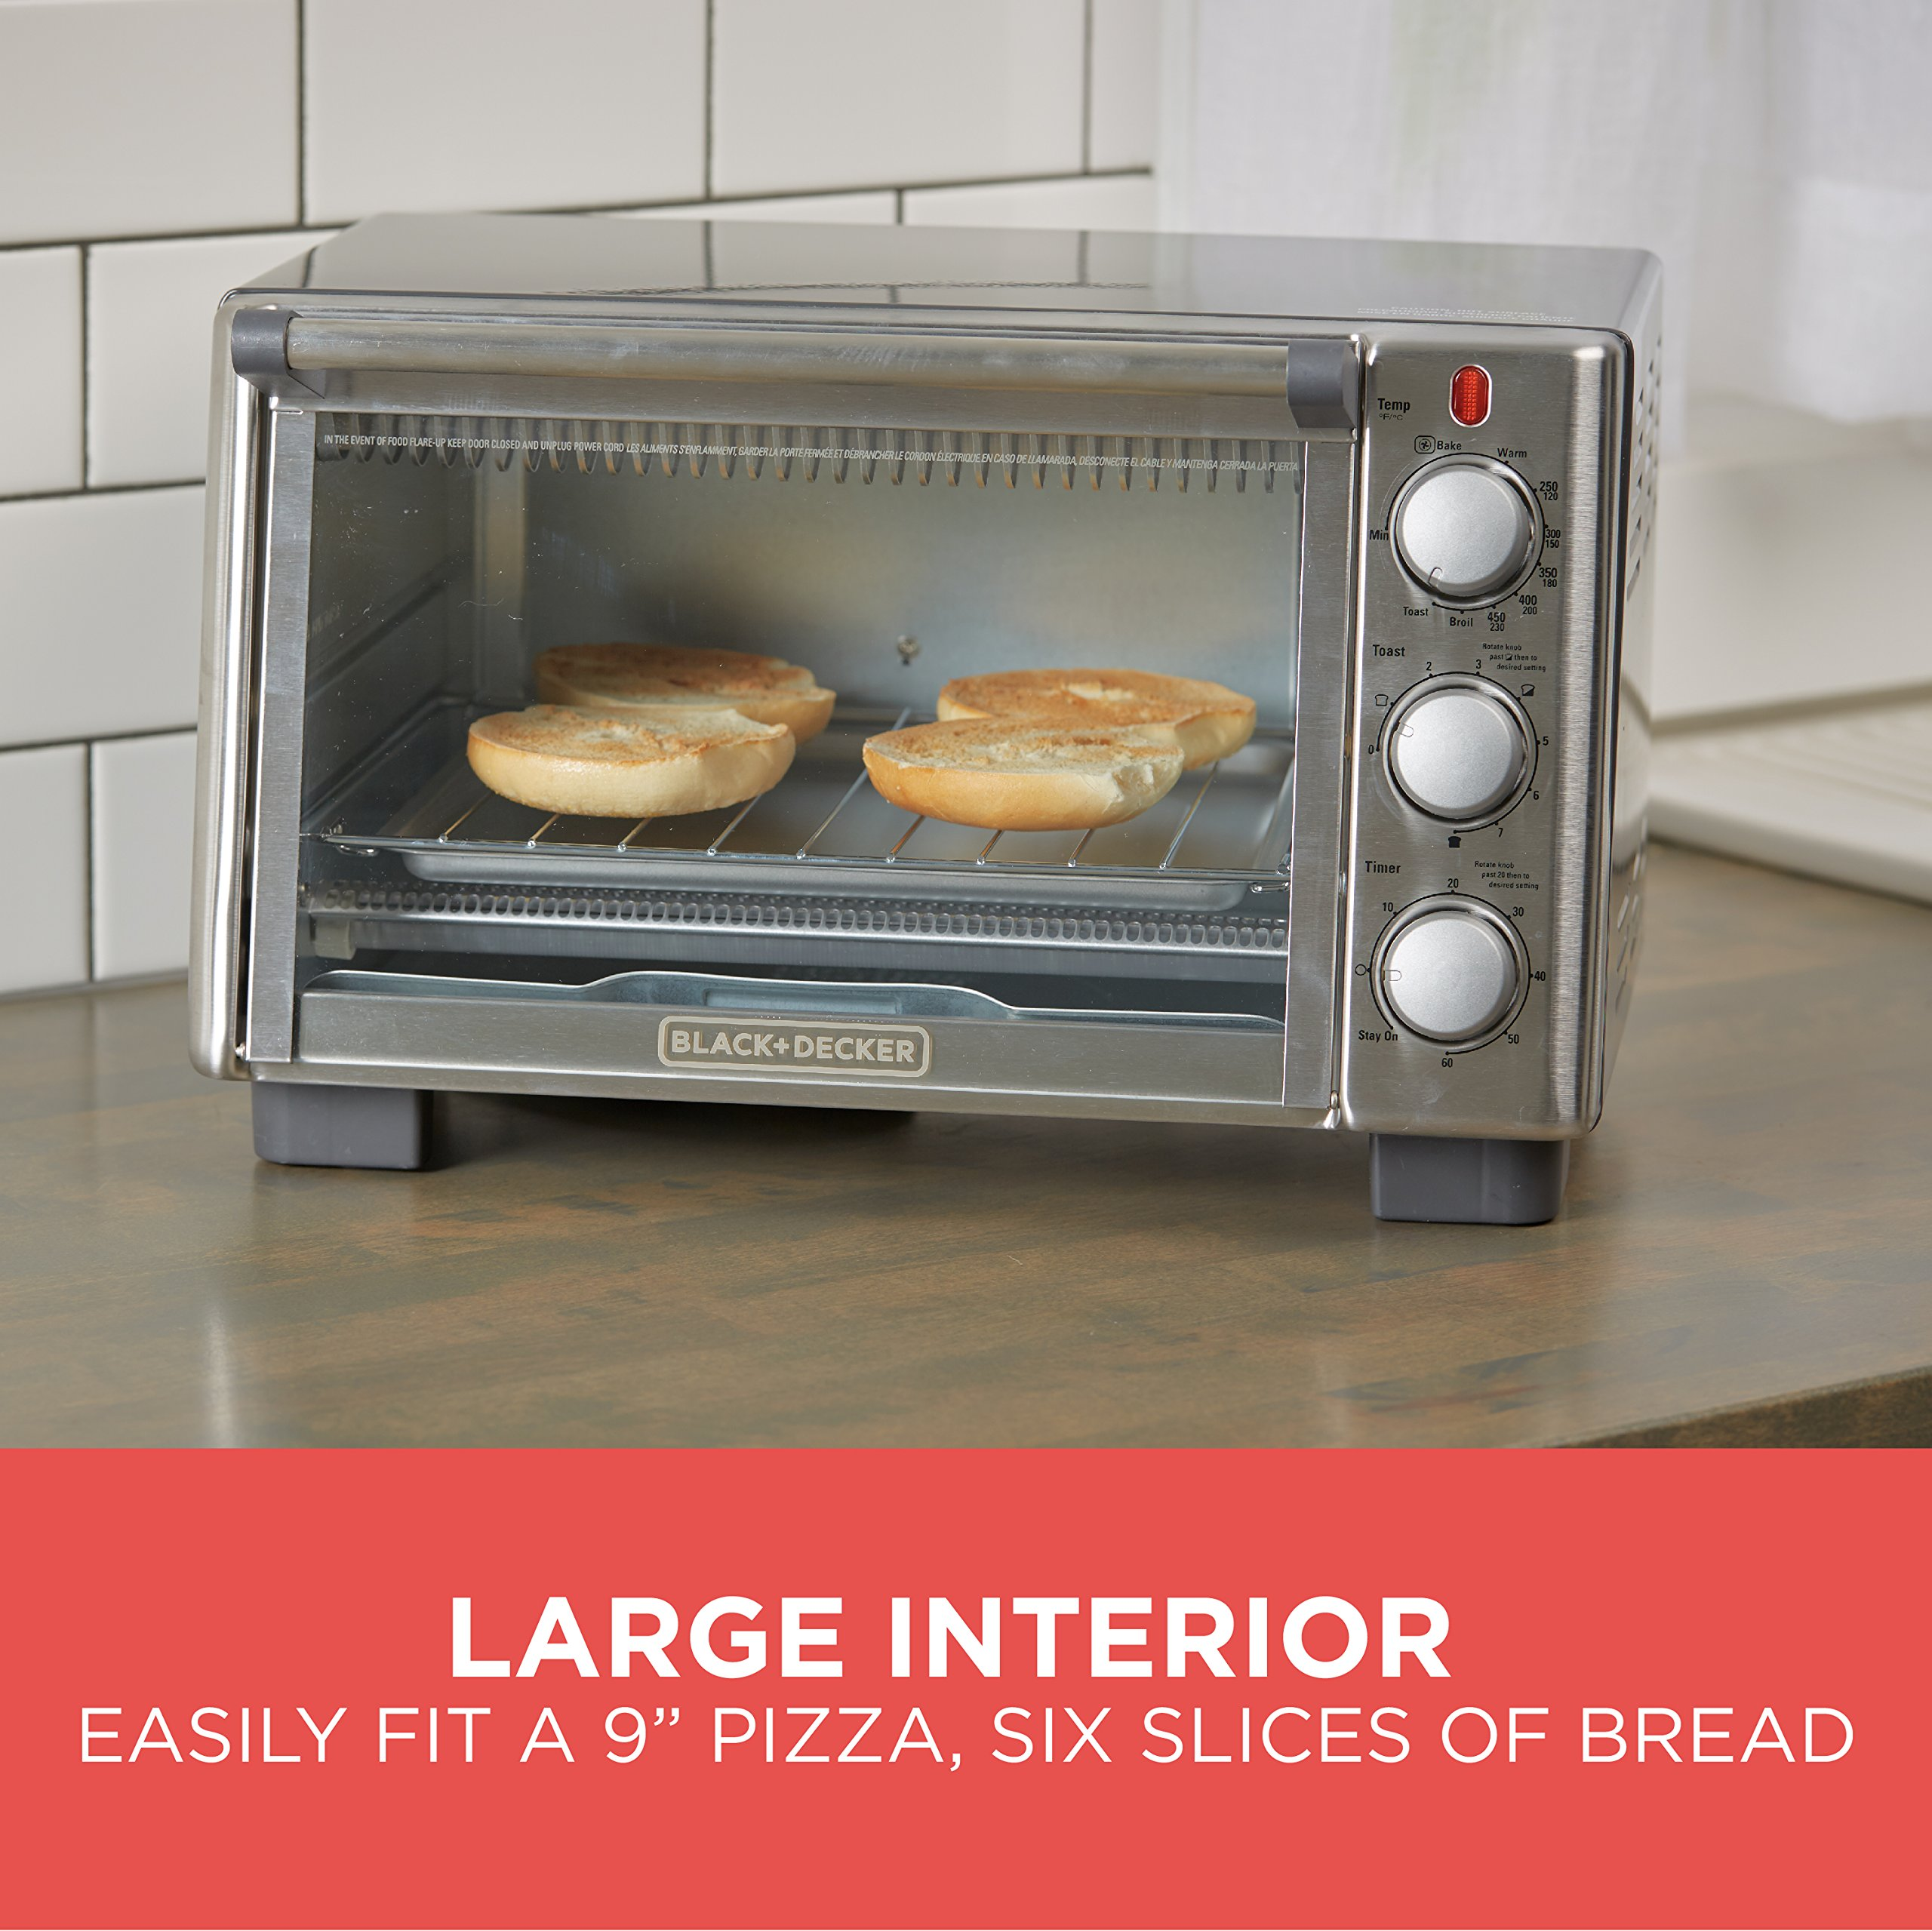 BLACK+DECKER 6-Slice Convection Countertop Toaster Oven, Stainless Steel/Black, TO2050S by BLACK+DECKER (Image #6)